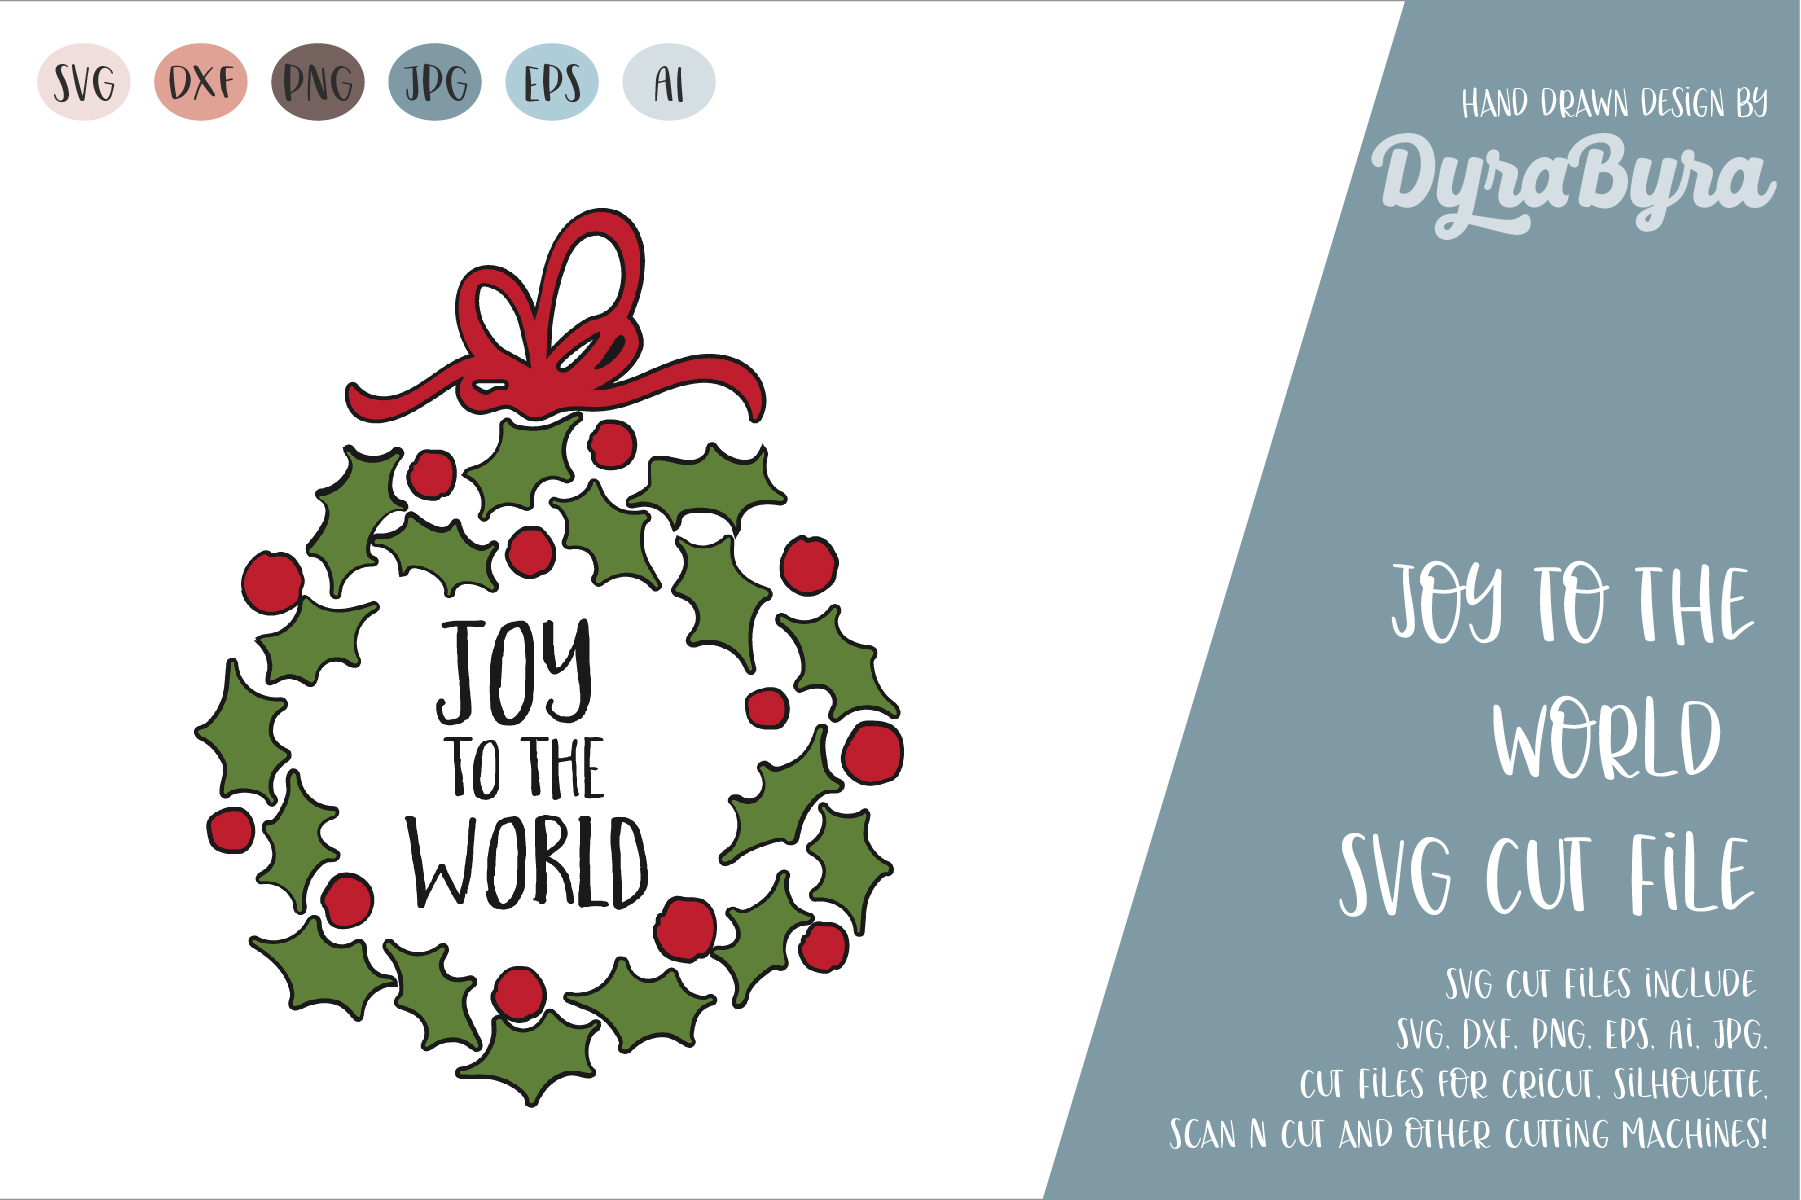 Joy to the World SVG / Christmas SVG Cut File example image 2